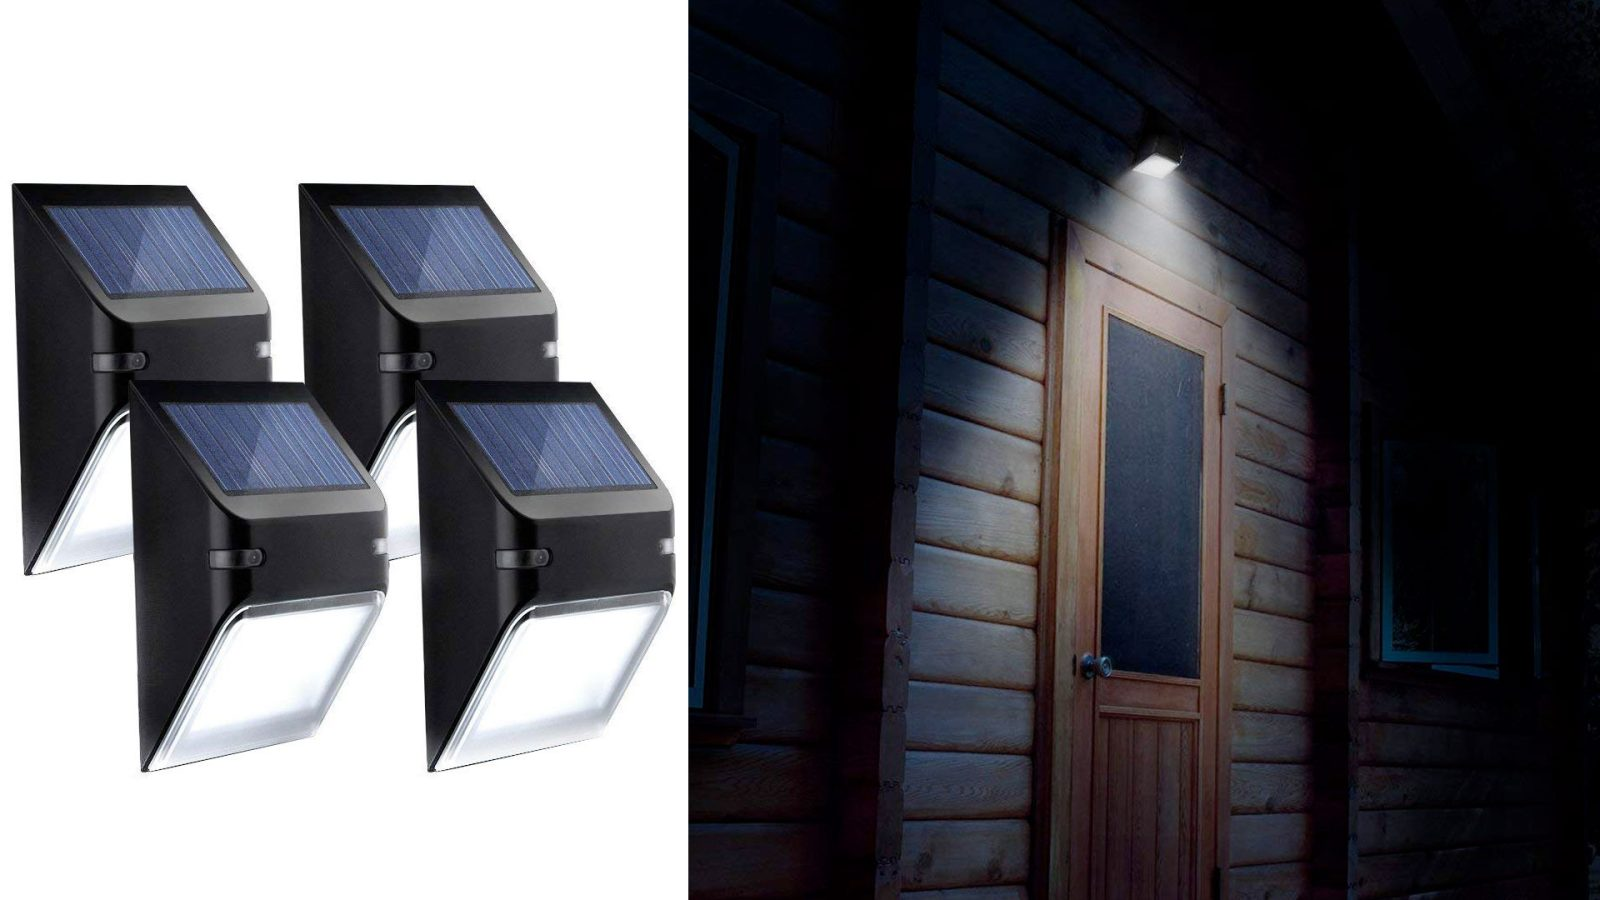 illuminate your yard without wires by using this 4 pack of solar lights for just 10 shipped [ 1600 x 900 Pixel ]